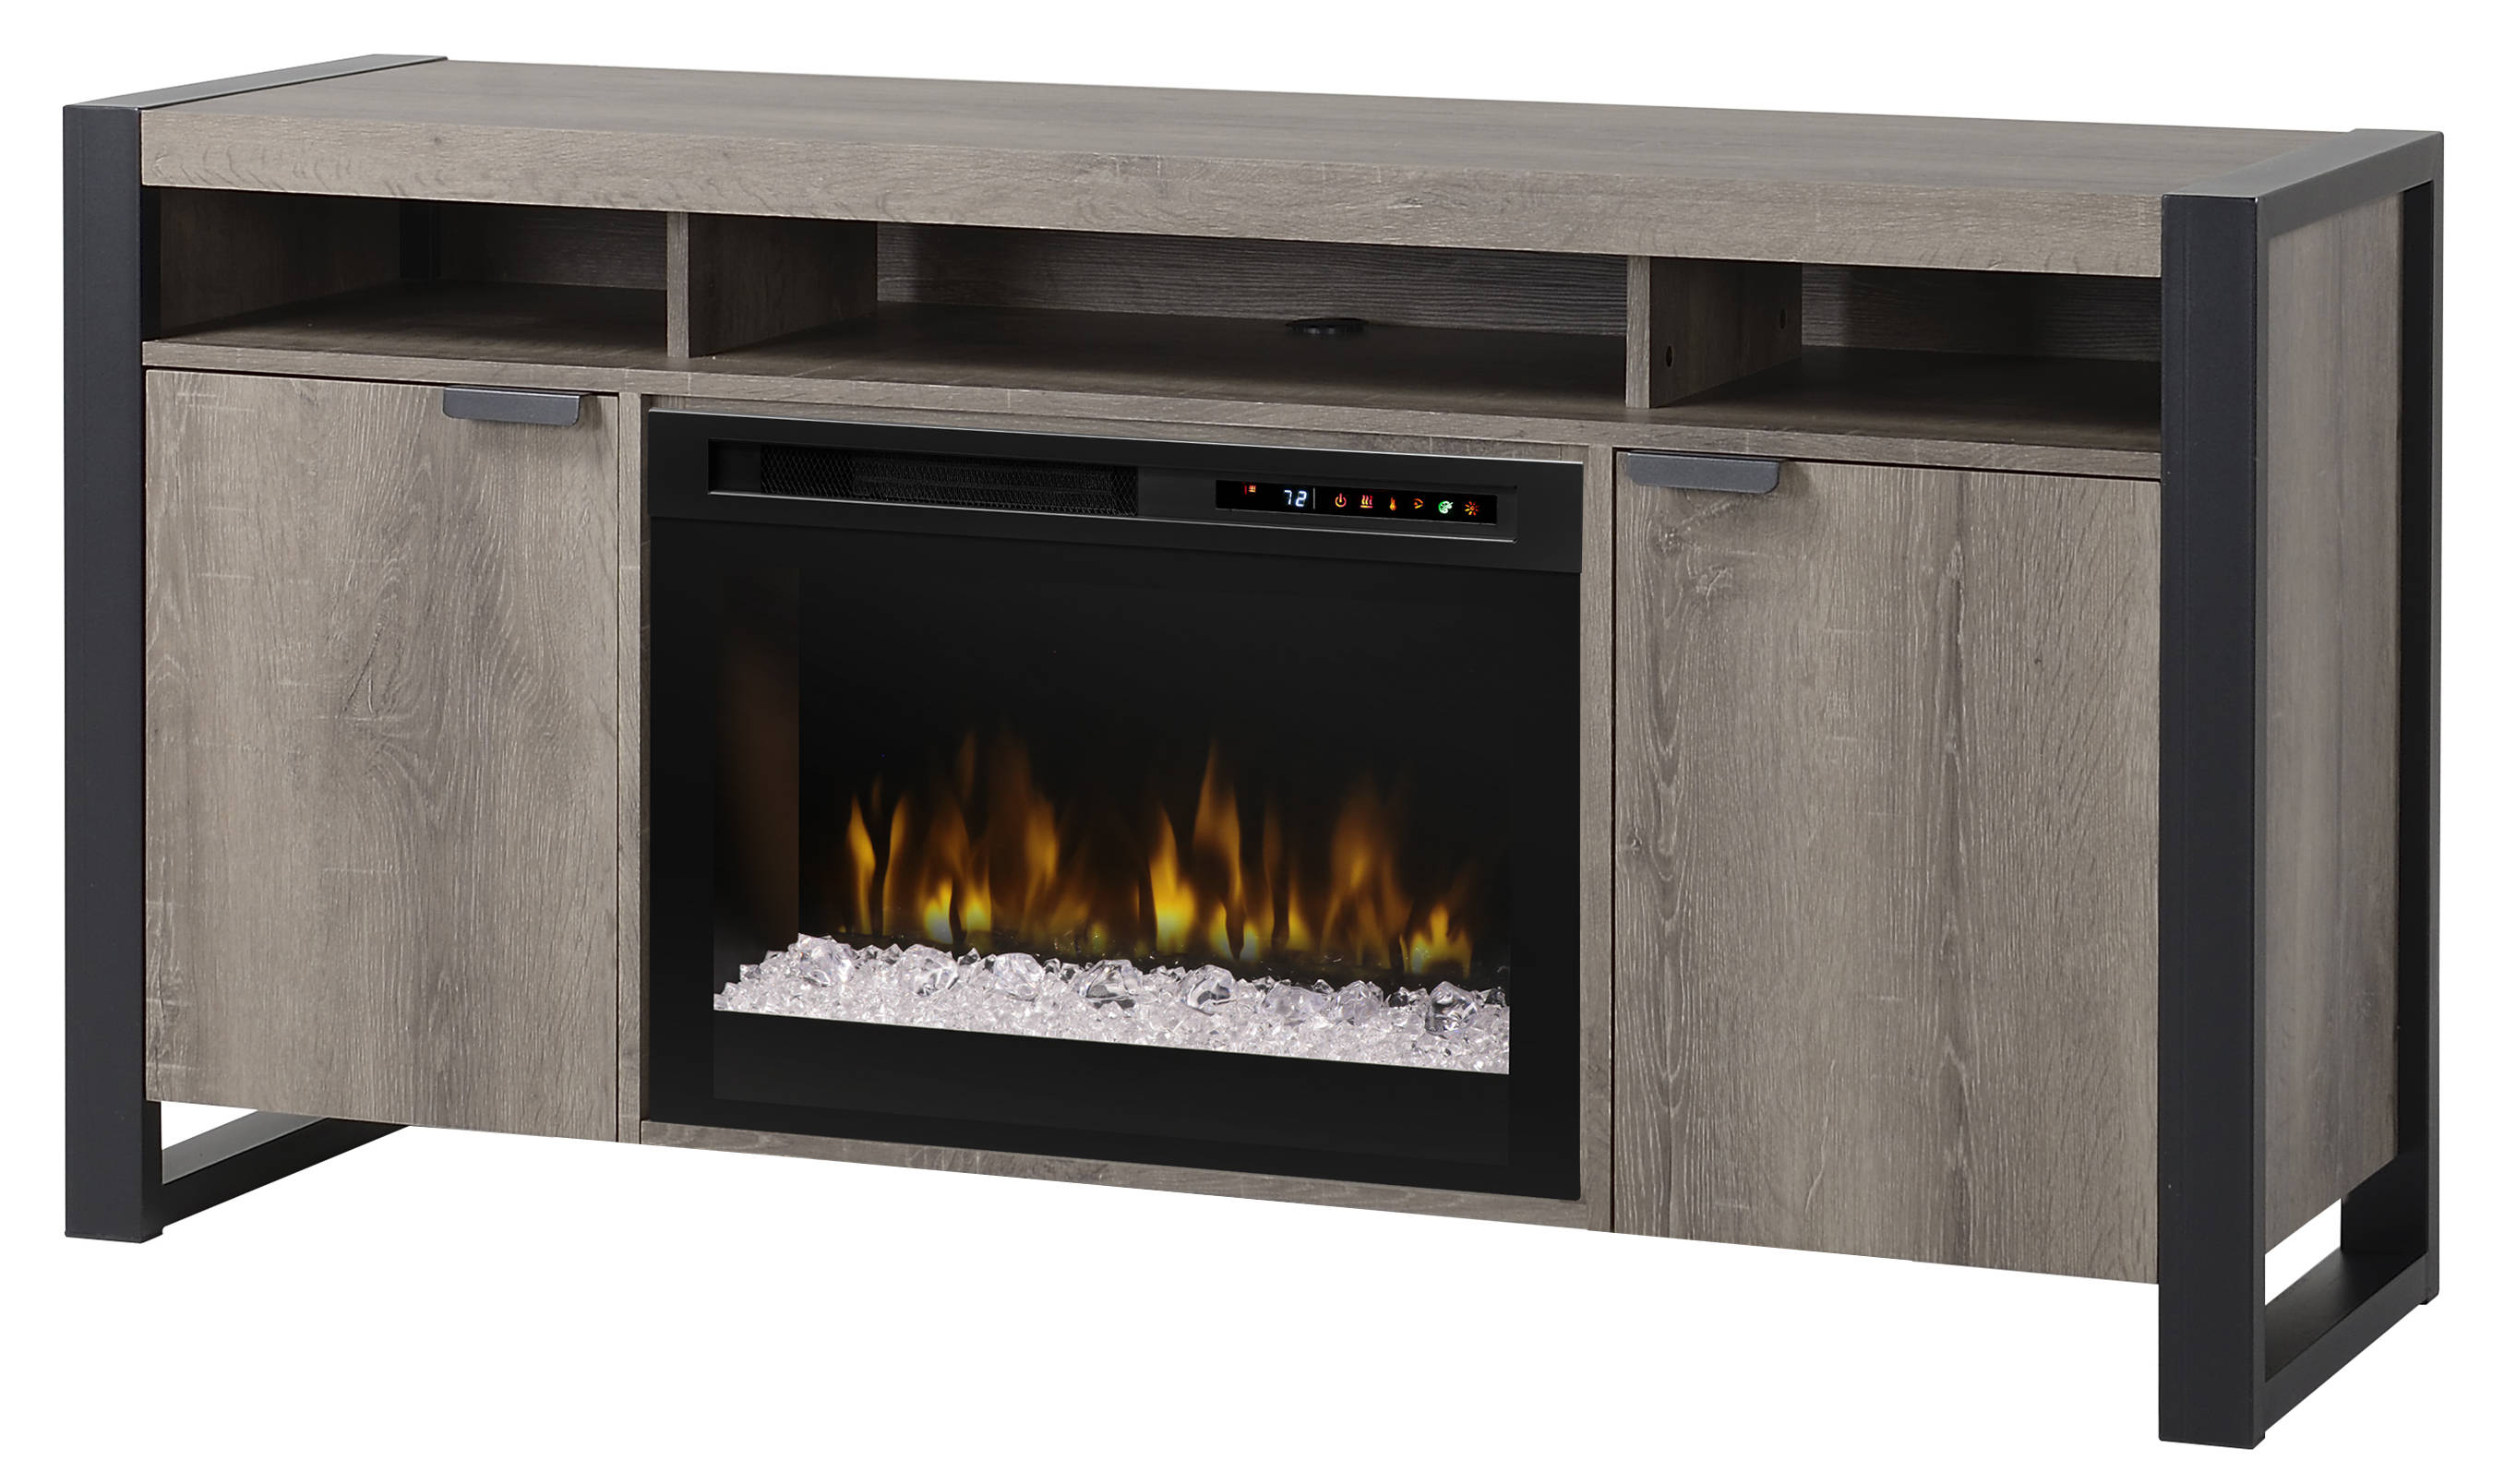 Dimplex pierre steeltown wood media console electric - Going to bed with embers in fireplace ...